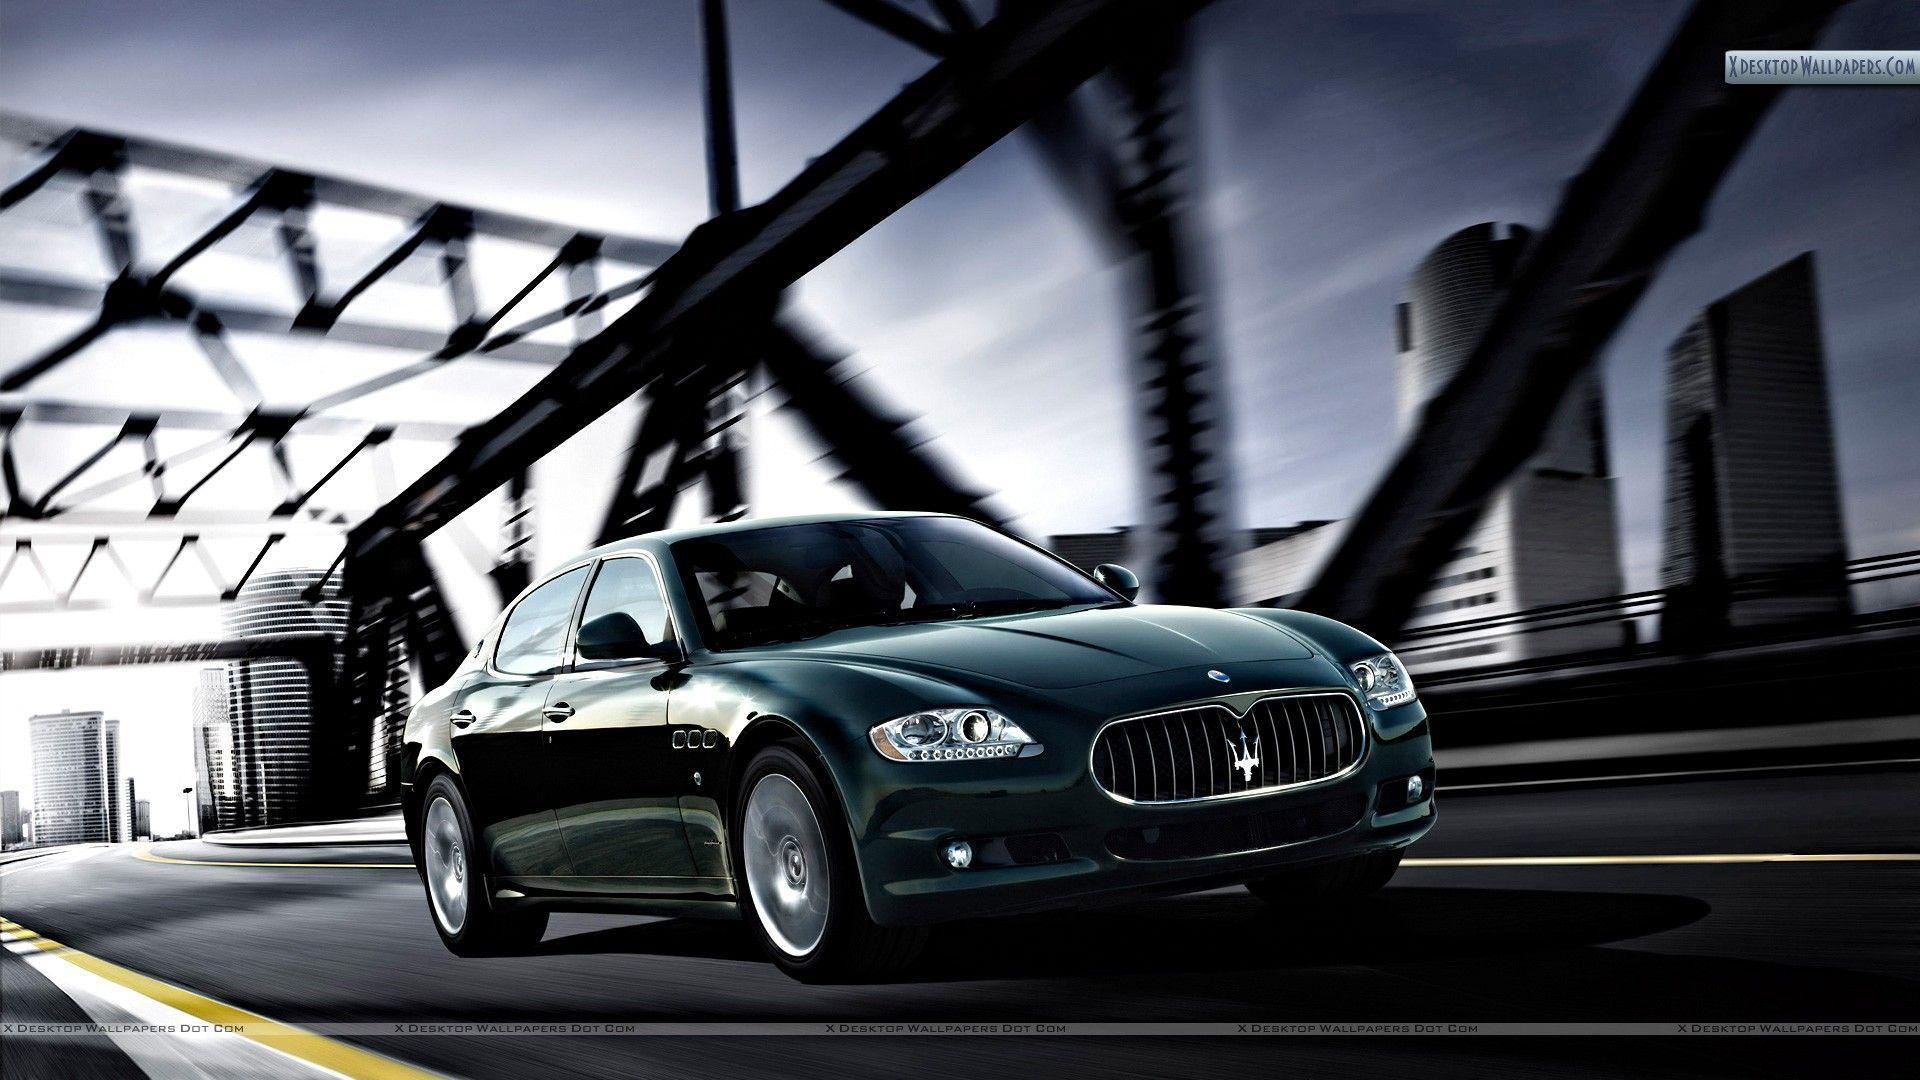 maserati quattroporte hd widescreen - photo #33